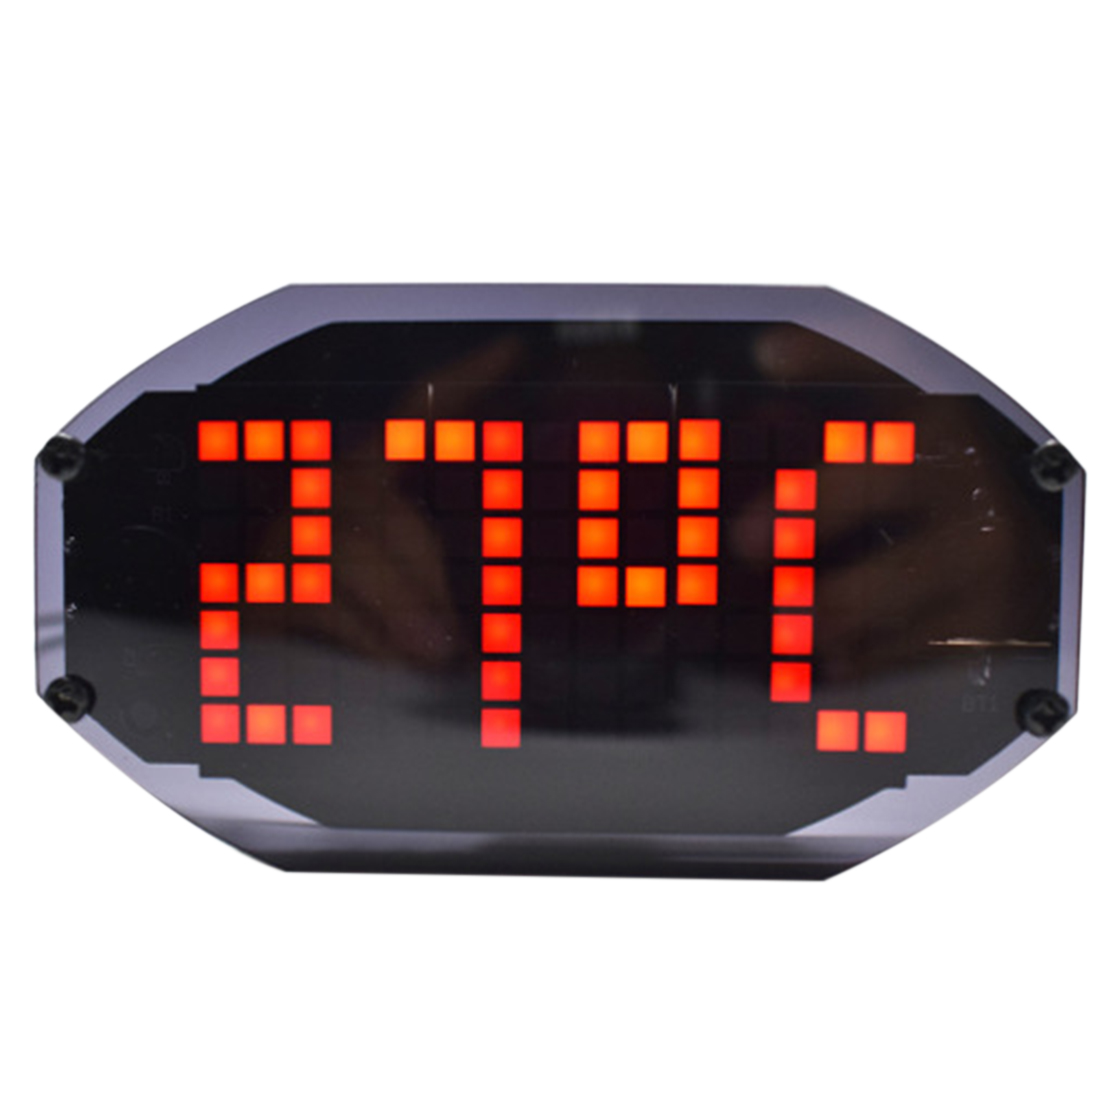 DIY LED Dot Matrix Desktop Clock With Temperature Holiday Birthday Reminder Function With Black Mirror Surface - Red